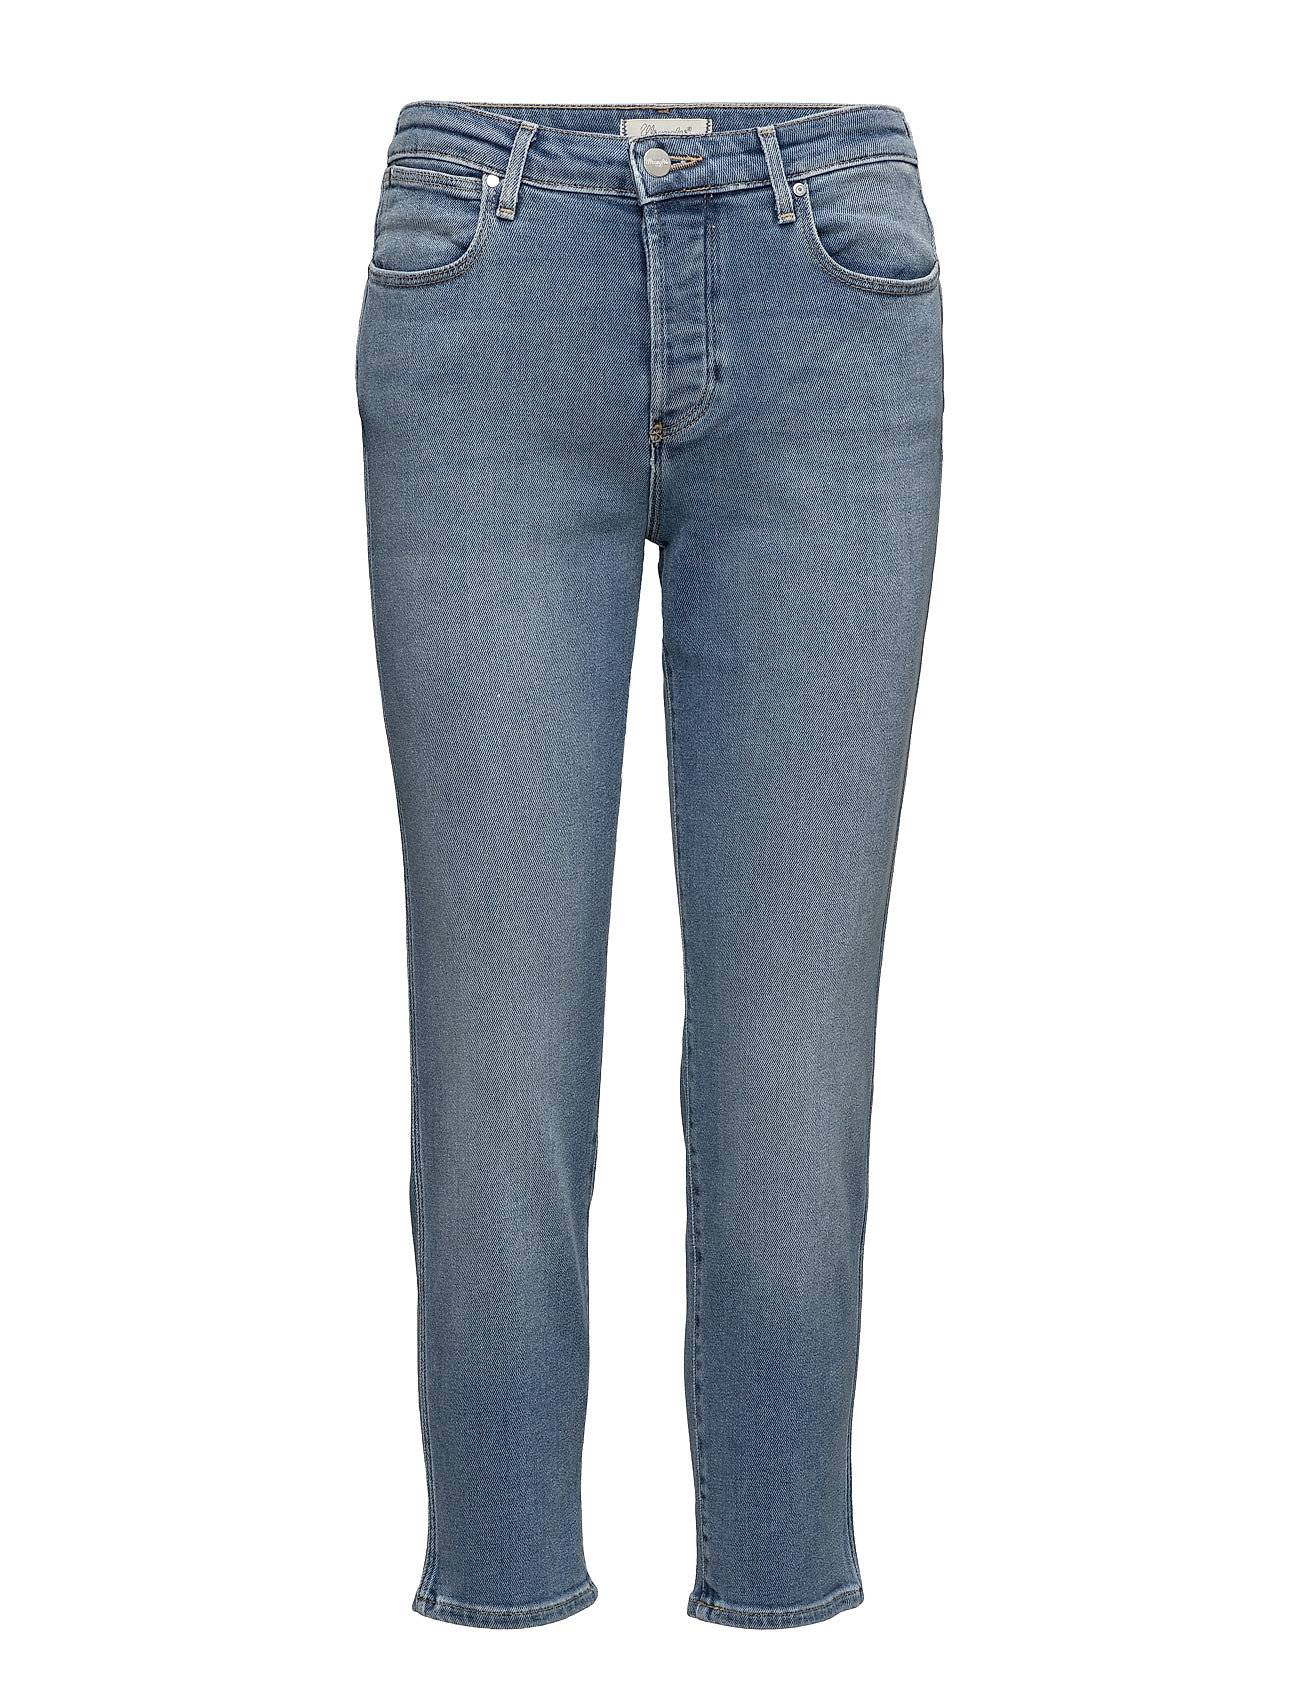 Wrangler Cropped Straight  Blue Jean Baby